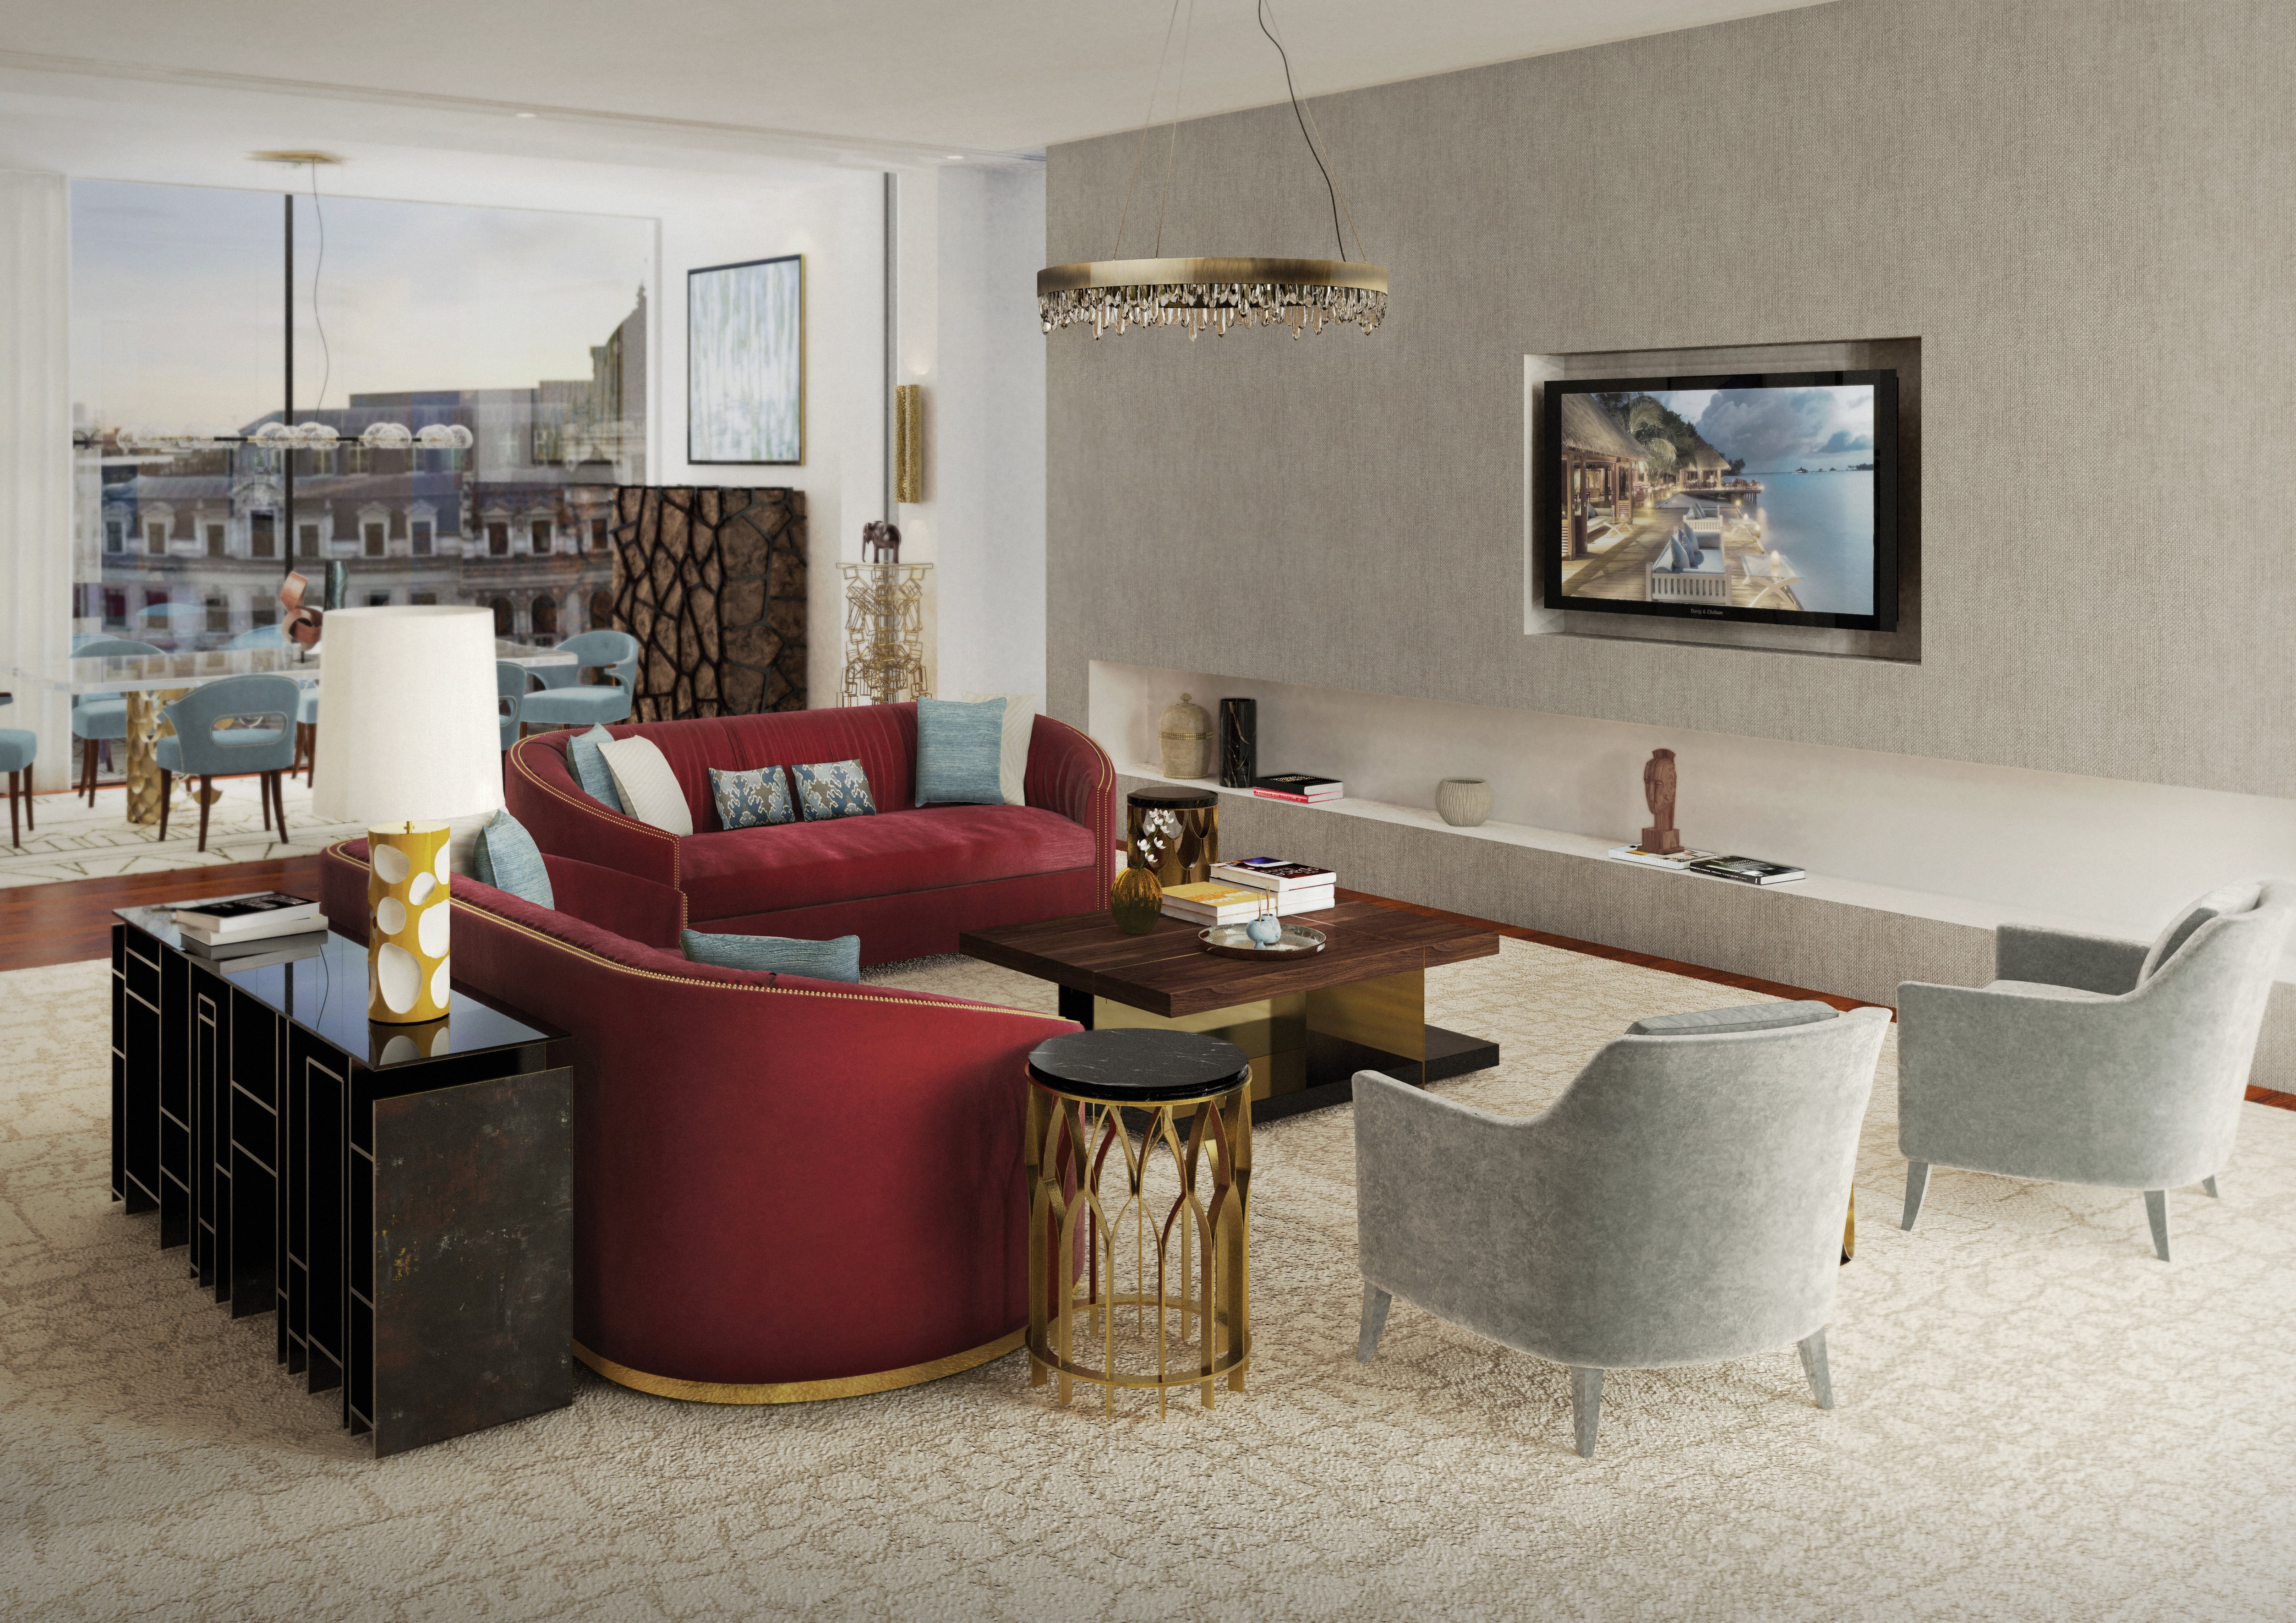 living room ideas Living Room Ideas For a Luxurious Interior Design Project Living Room Ideas For a Luxurious Interior Design Project 27 min